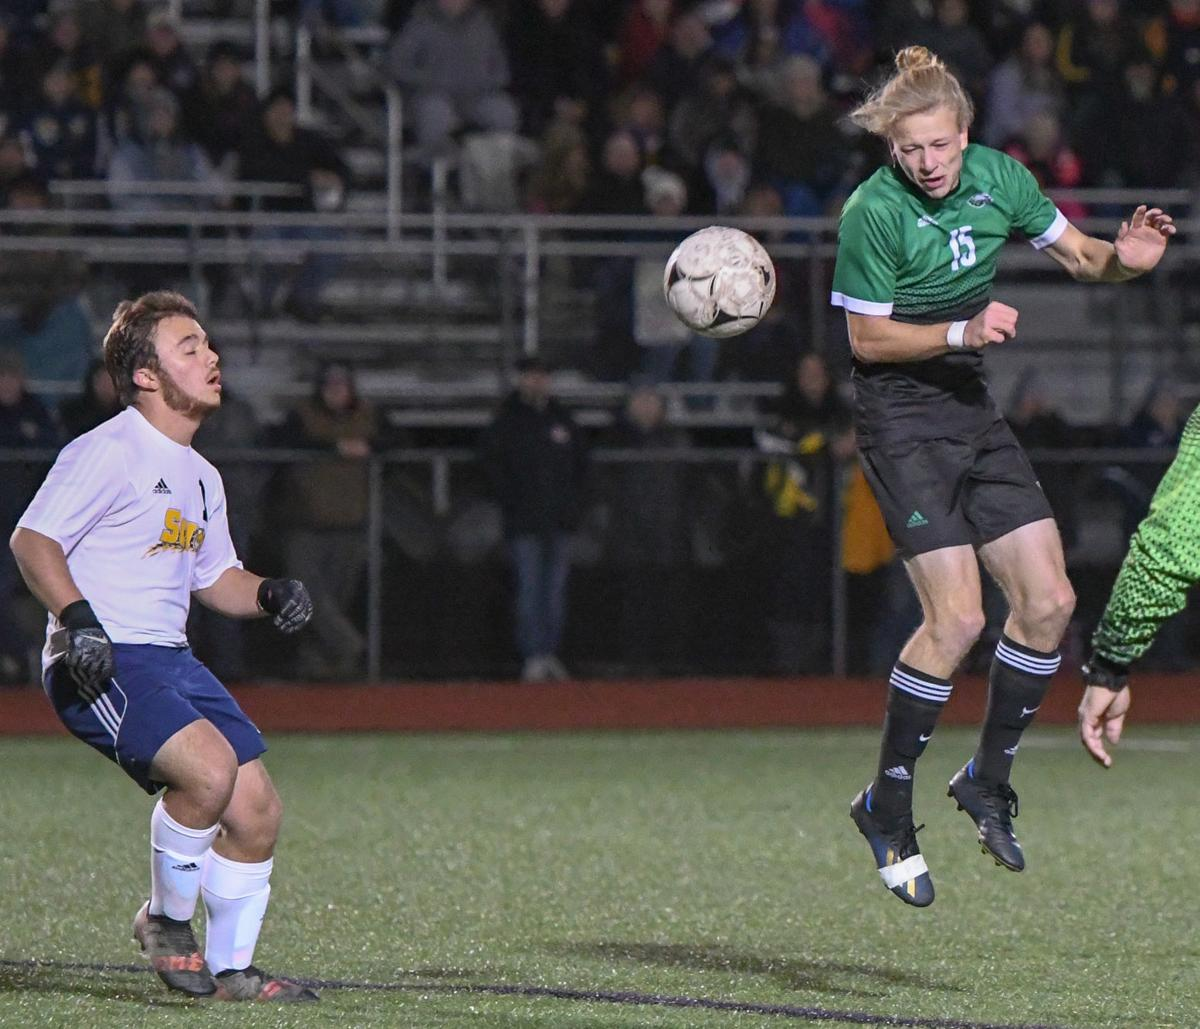 Late goal lifts Fillmore past Scio in 'D' crossover